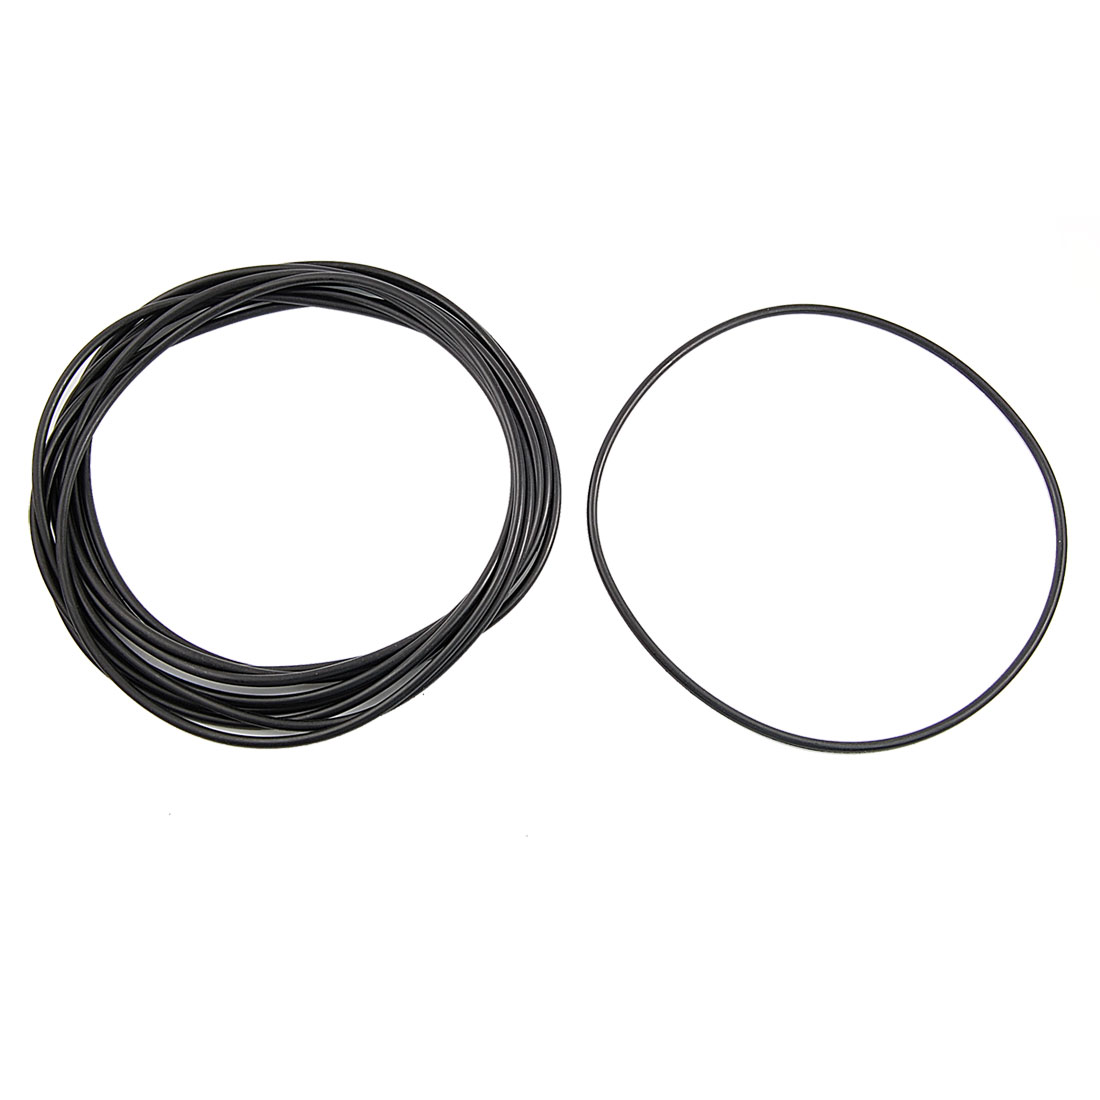 10 Pcs 170mm x 4mm Mechanical Nitrile Rubber O Ring Oil Seal Gaskets